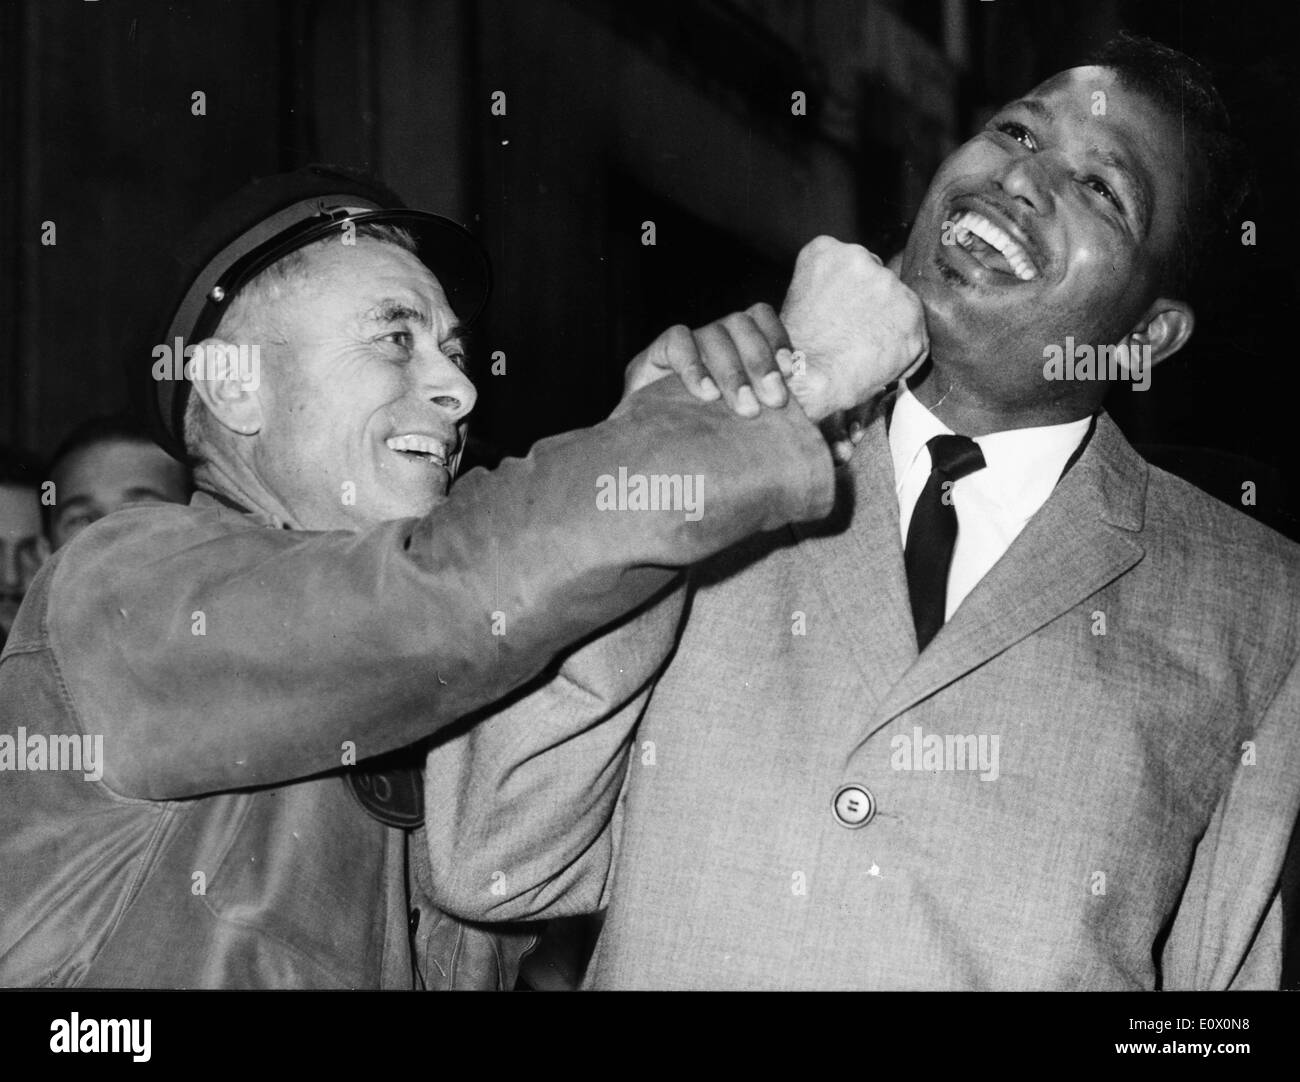 Boxer 'Sugar' Ray Robinson joking around with a fan - Stock Image